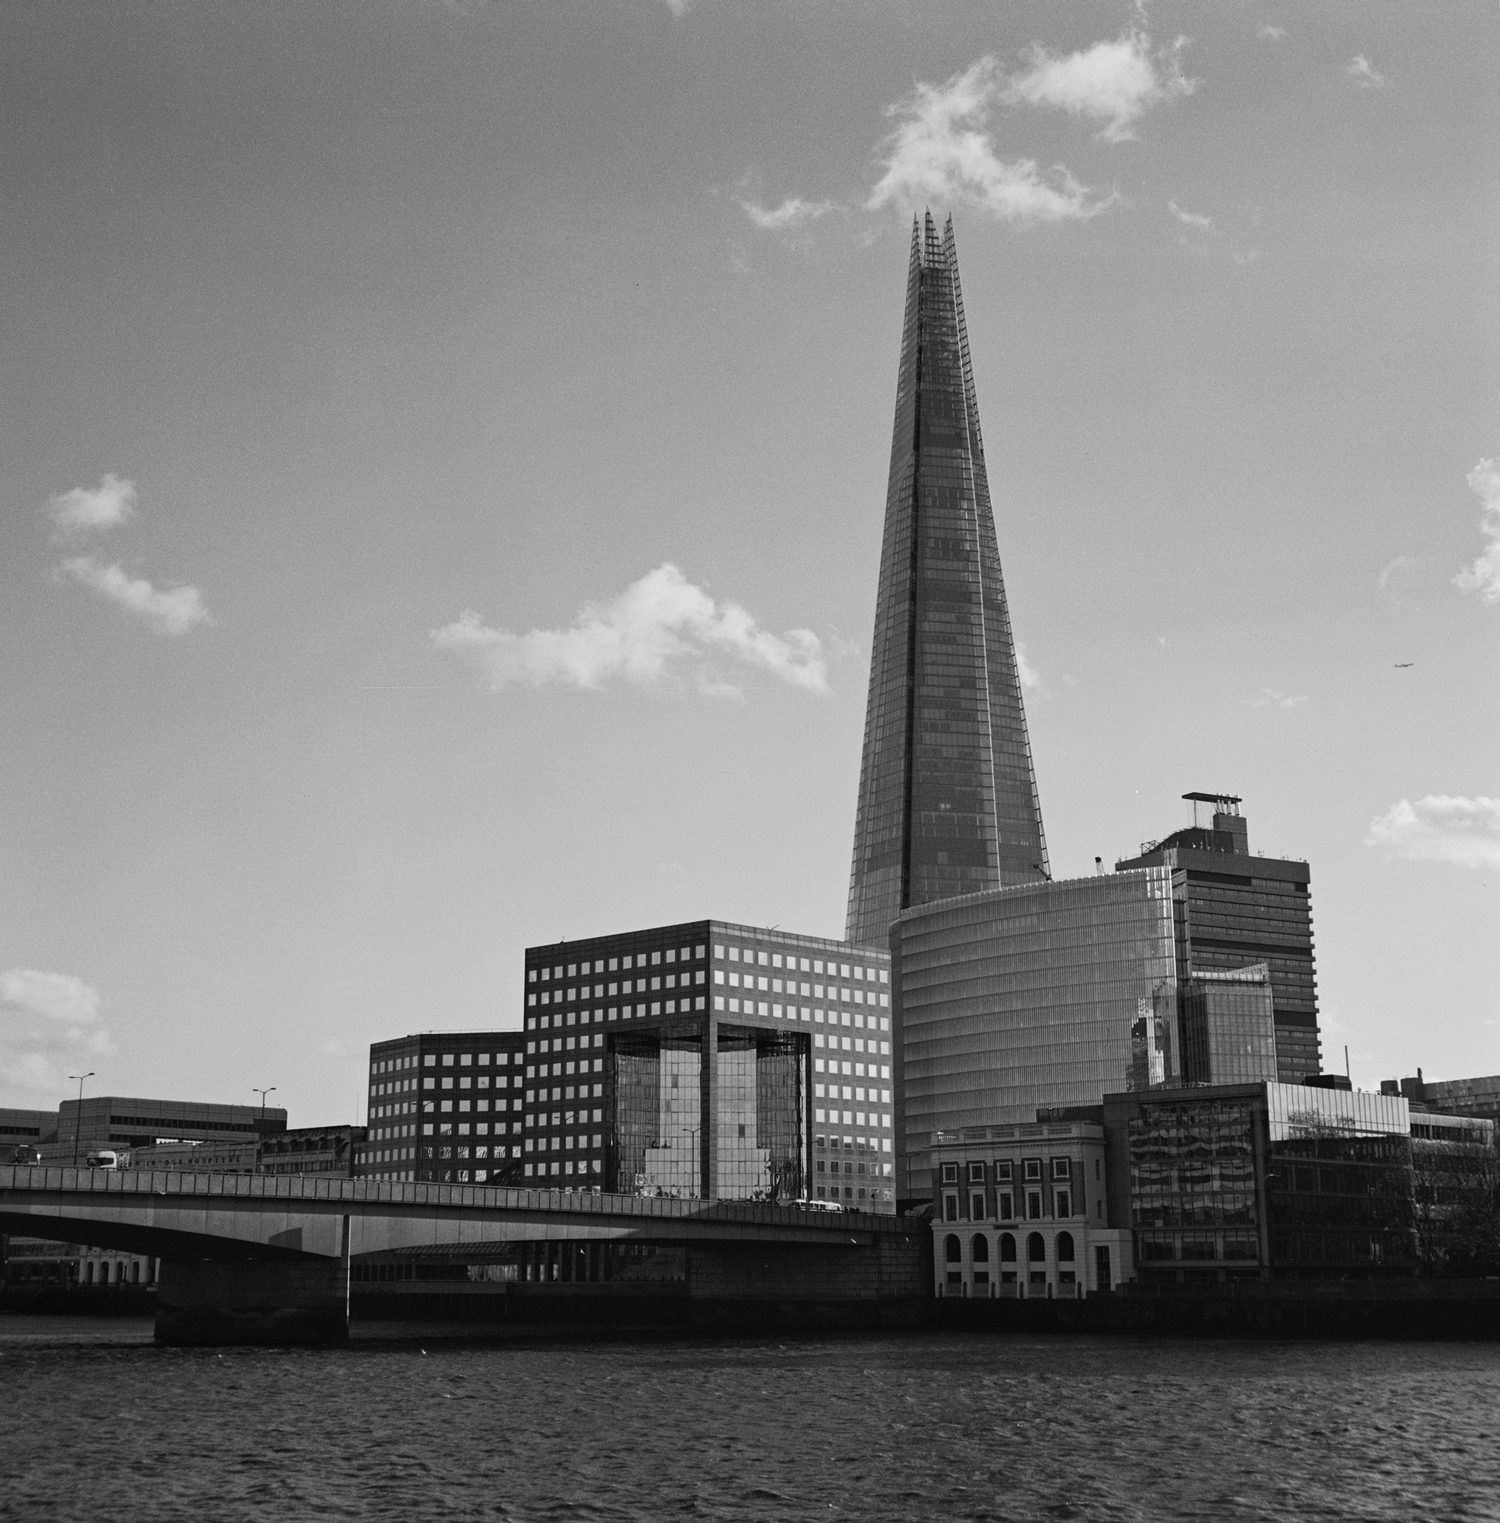 Black & white film photography by Sandeep Sumal LondonBridge_XP2_ZeissIkonNettar